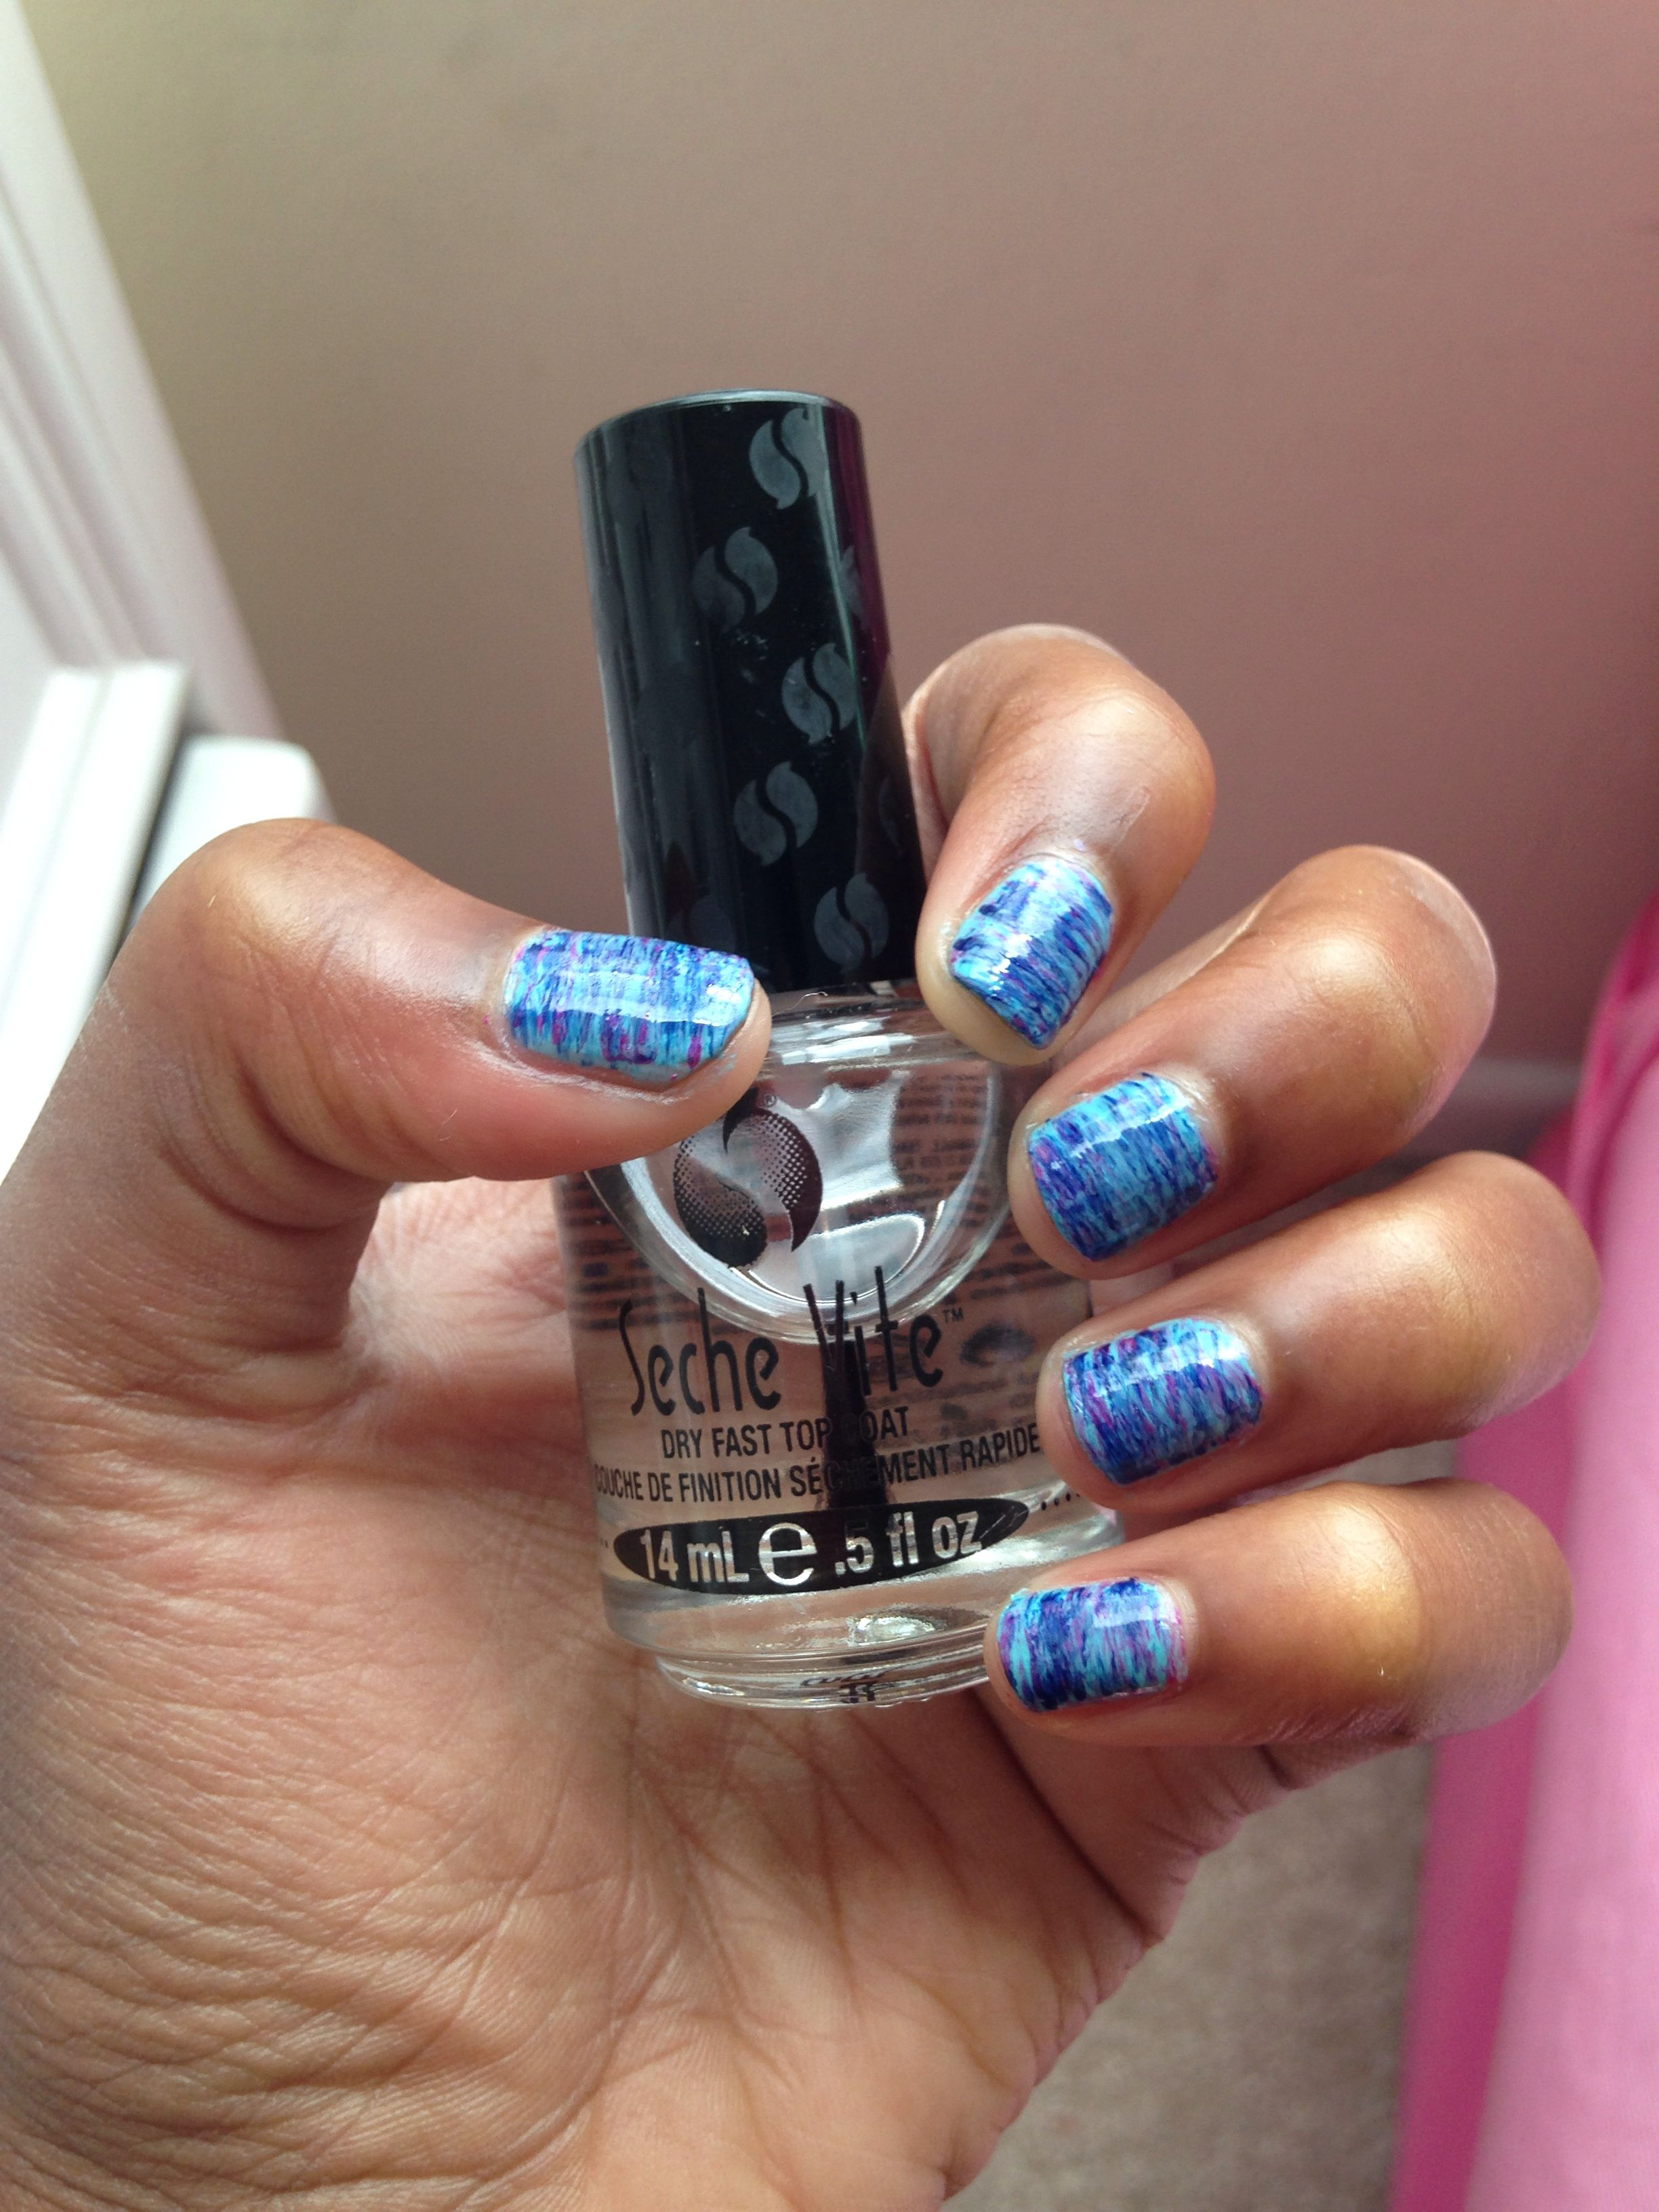 Loving My Seche Vite Dry Fast Top Coat Just A Simple Fan Brush Nail Art I Like The Finishing Look Fyi It Will Get P Gradient Nails Fan Brush Nails Nail